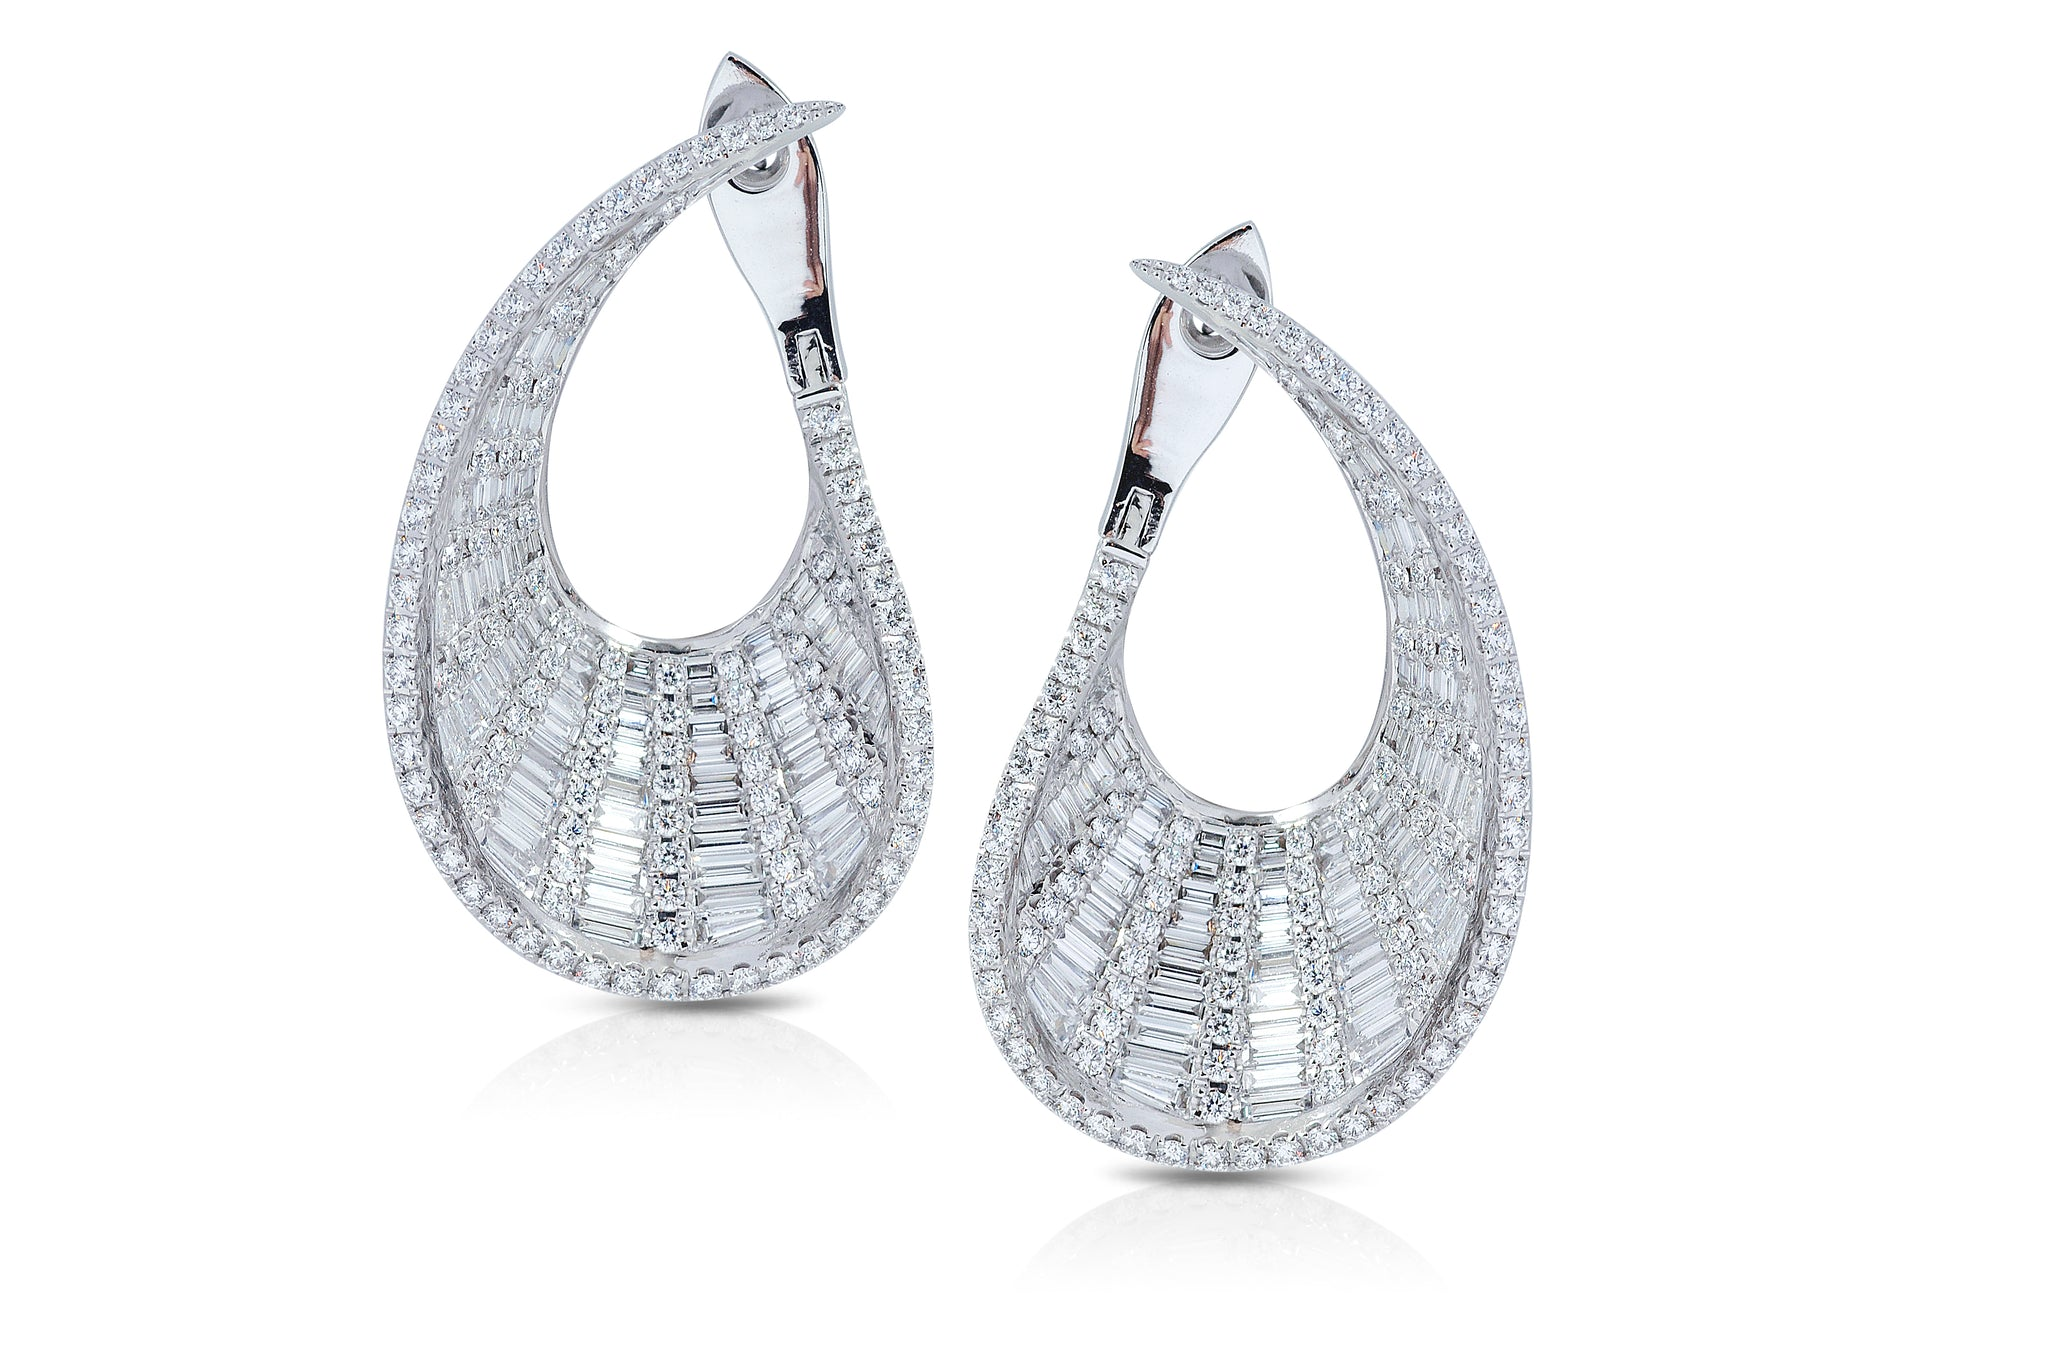 Talay front-back droplet Diamond Earrings (Grande) as seen on Naomi Watts